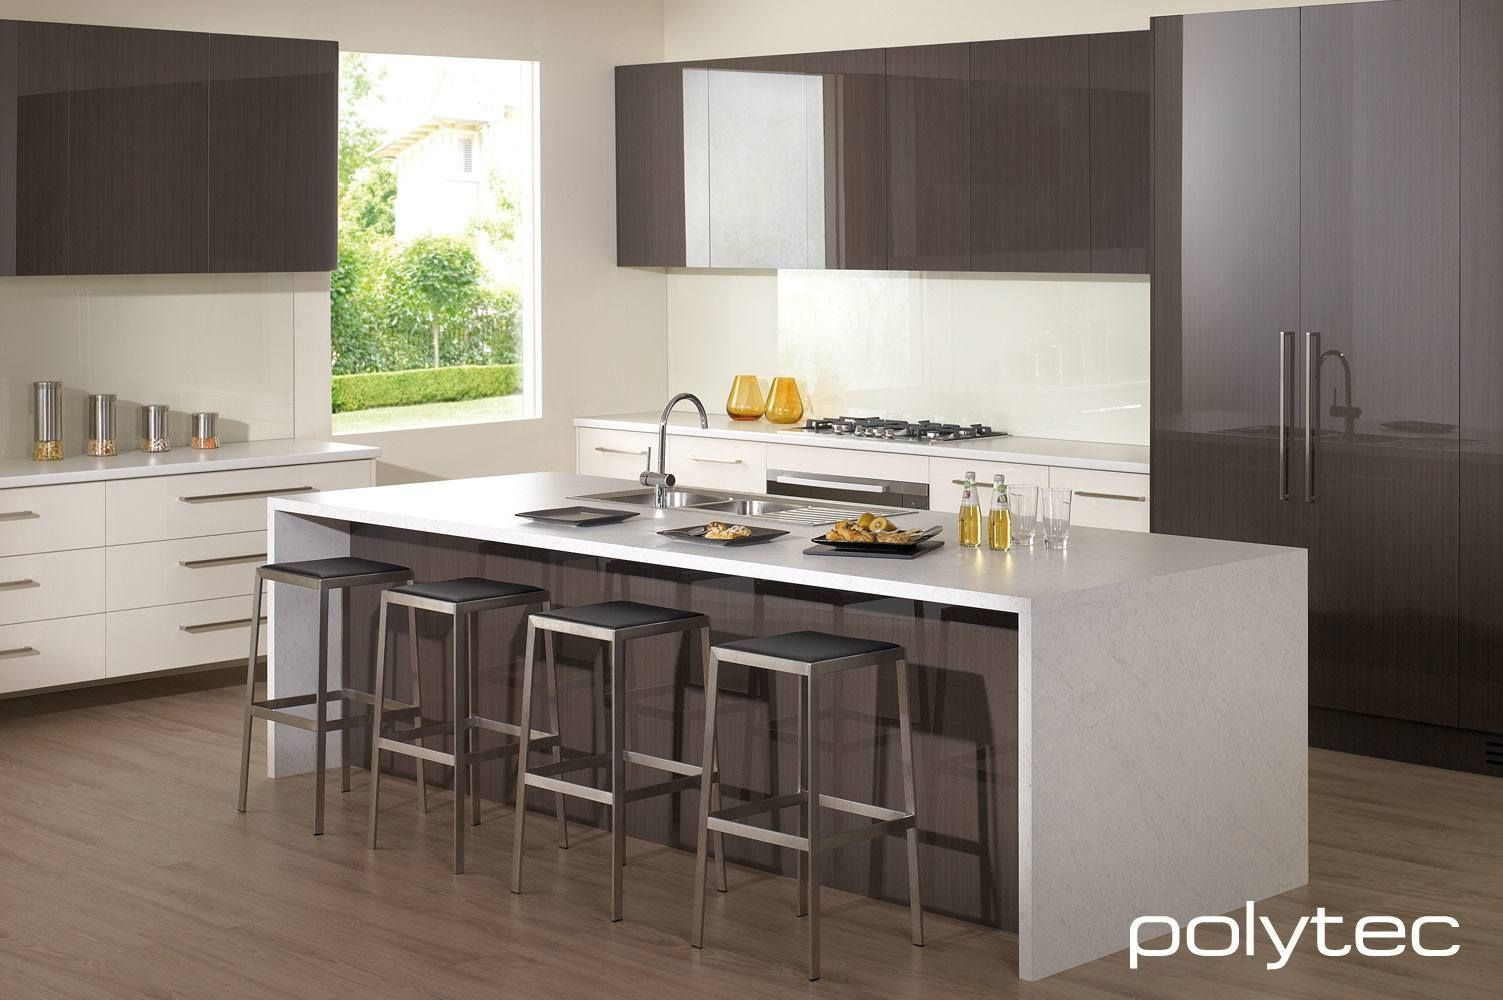 Createc doors and panels in truffle lini gloss melamine for Kitchen benchtop ideas